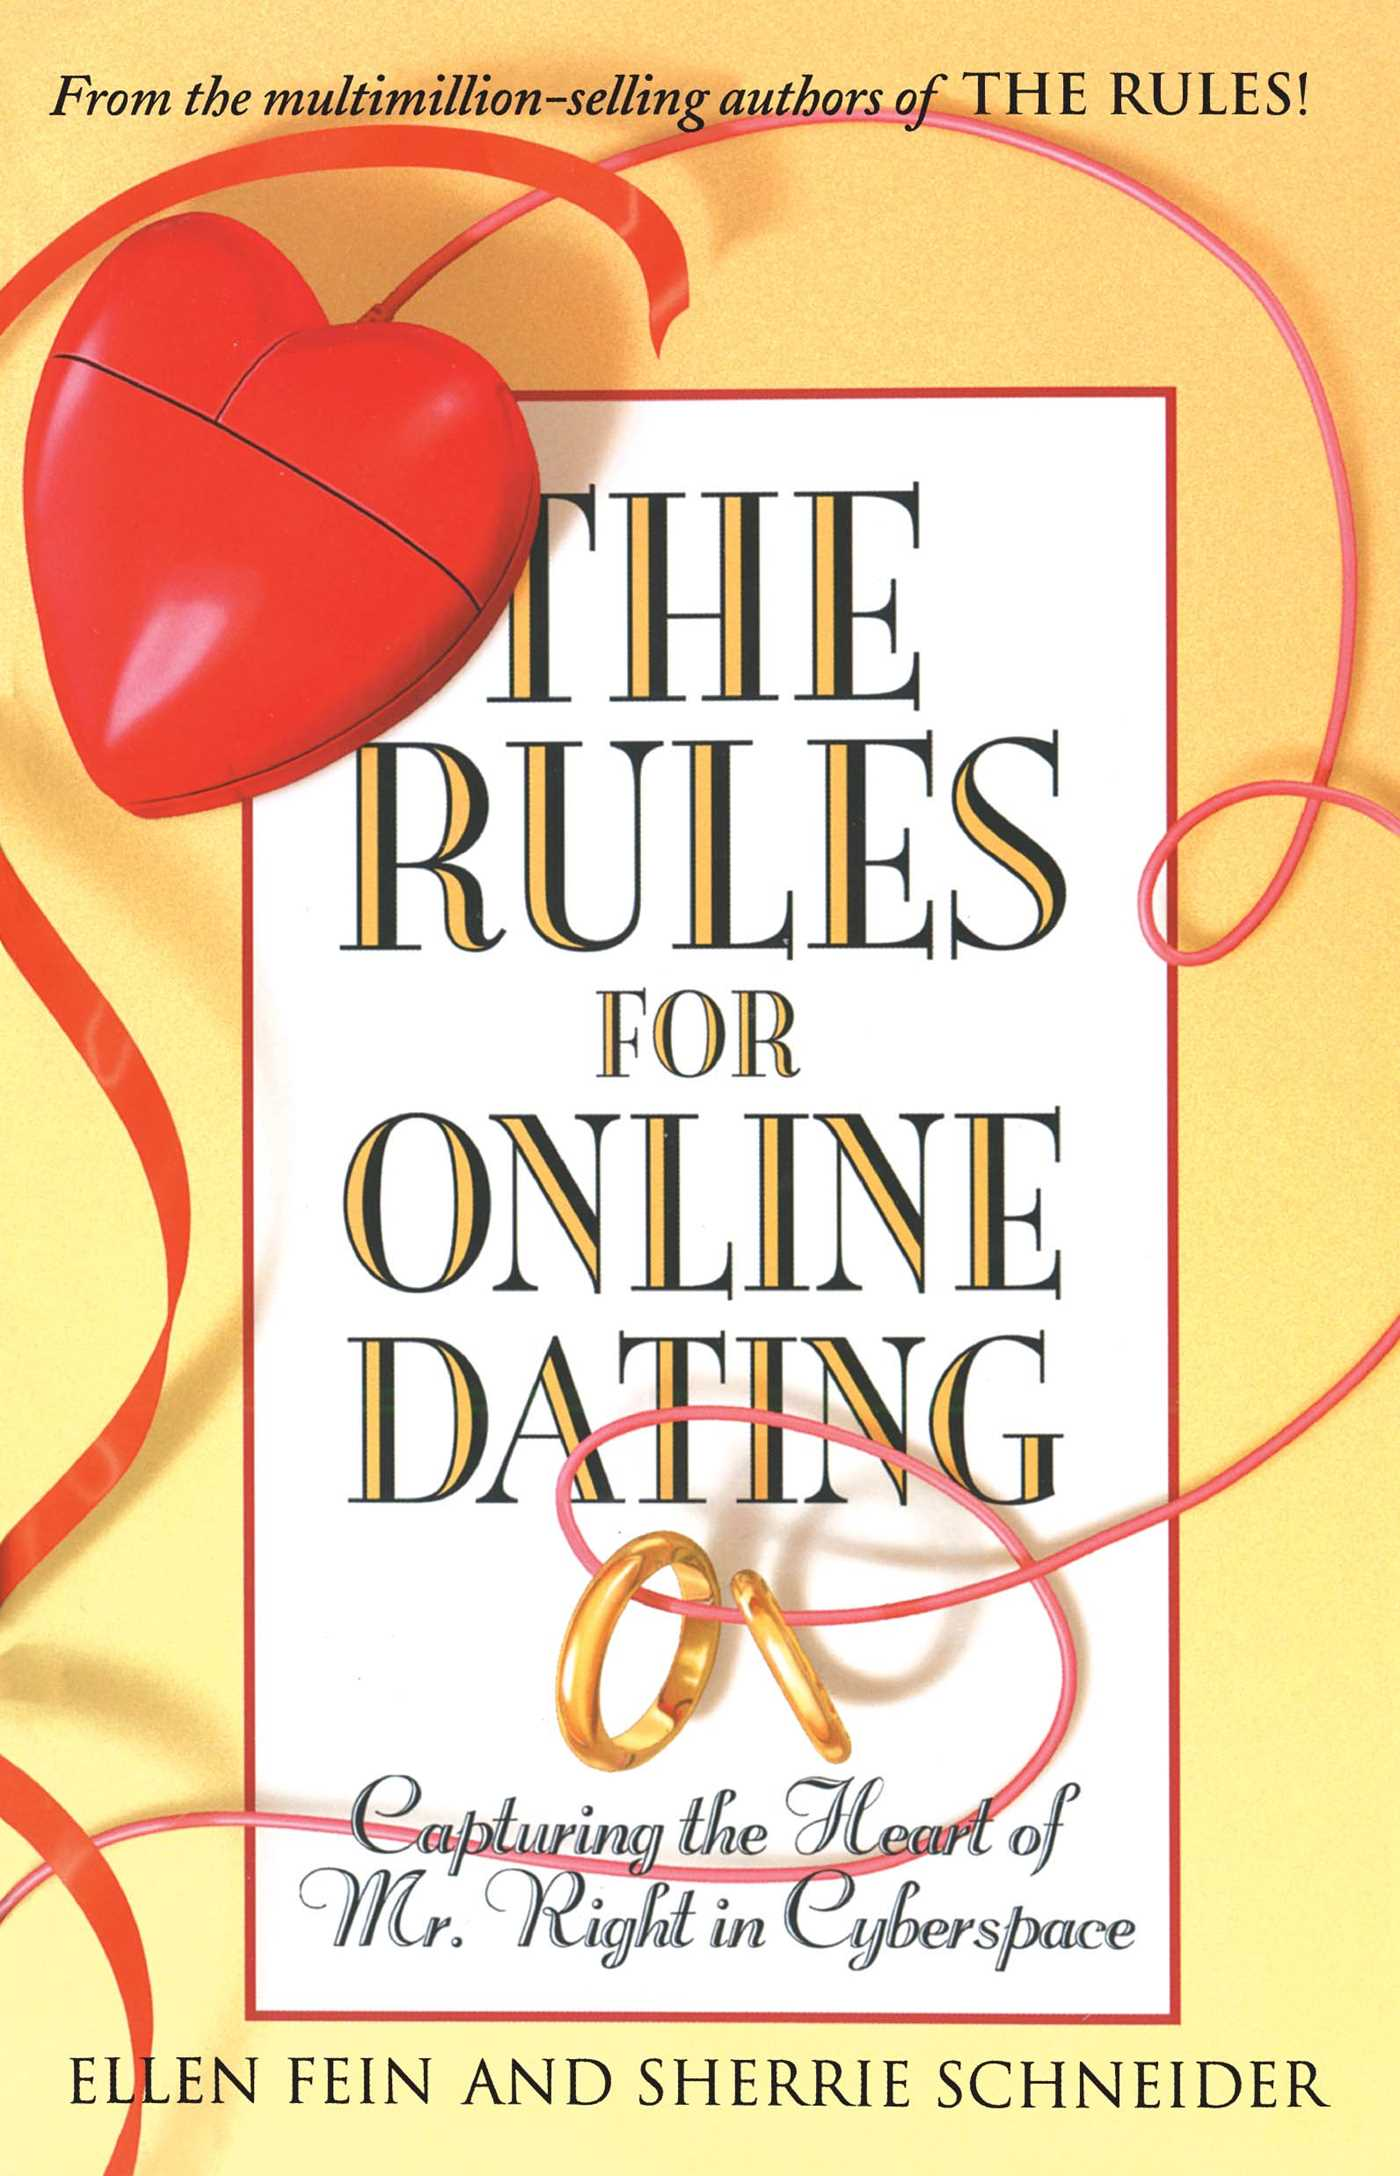 from Omari the rules to online dating